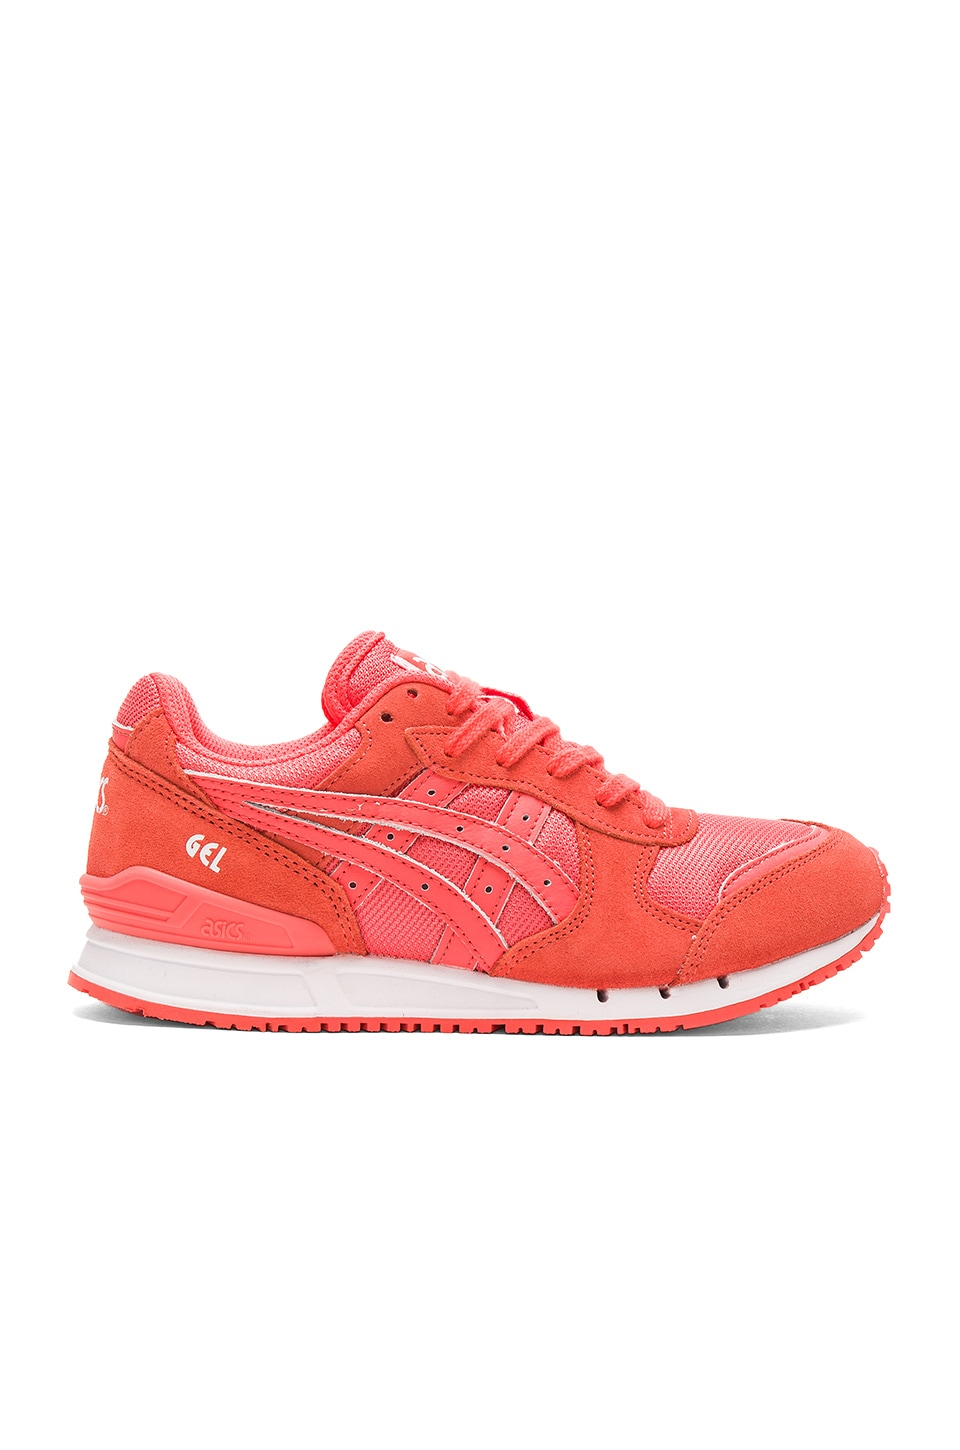 Asics Gel Classic in Coral